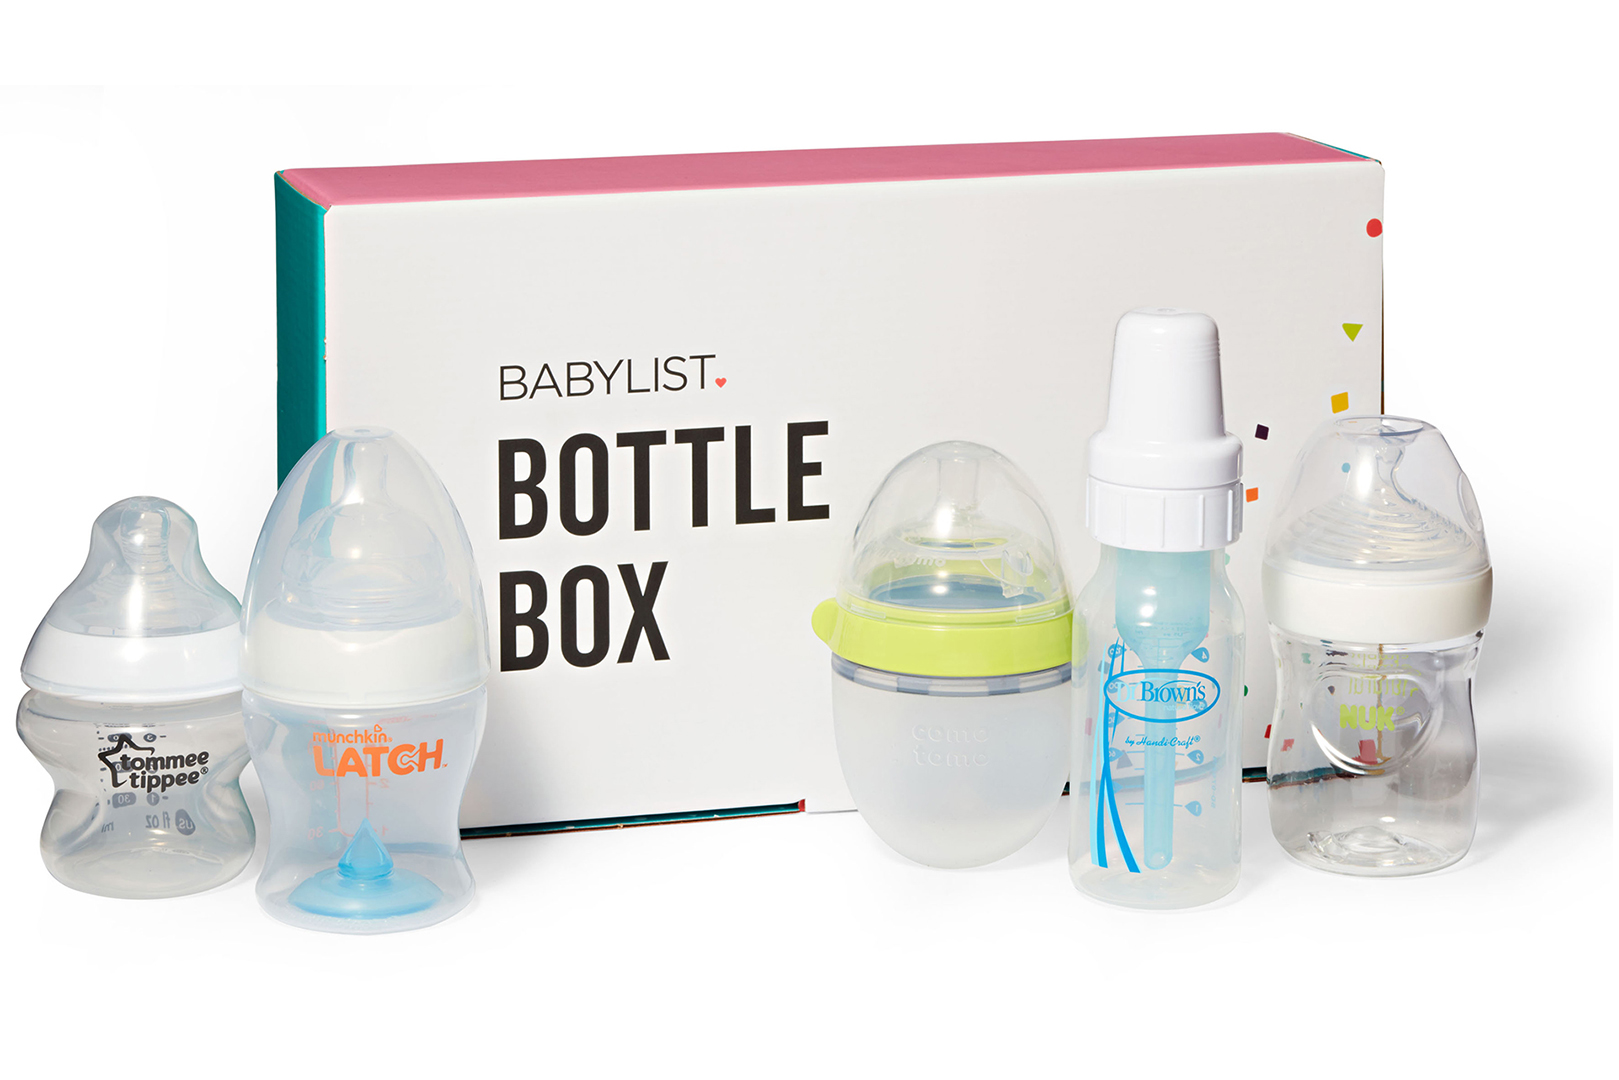 Babylist Bottle Box packaging and included bottles